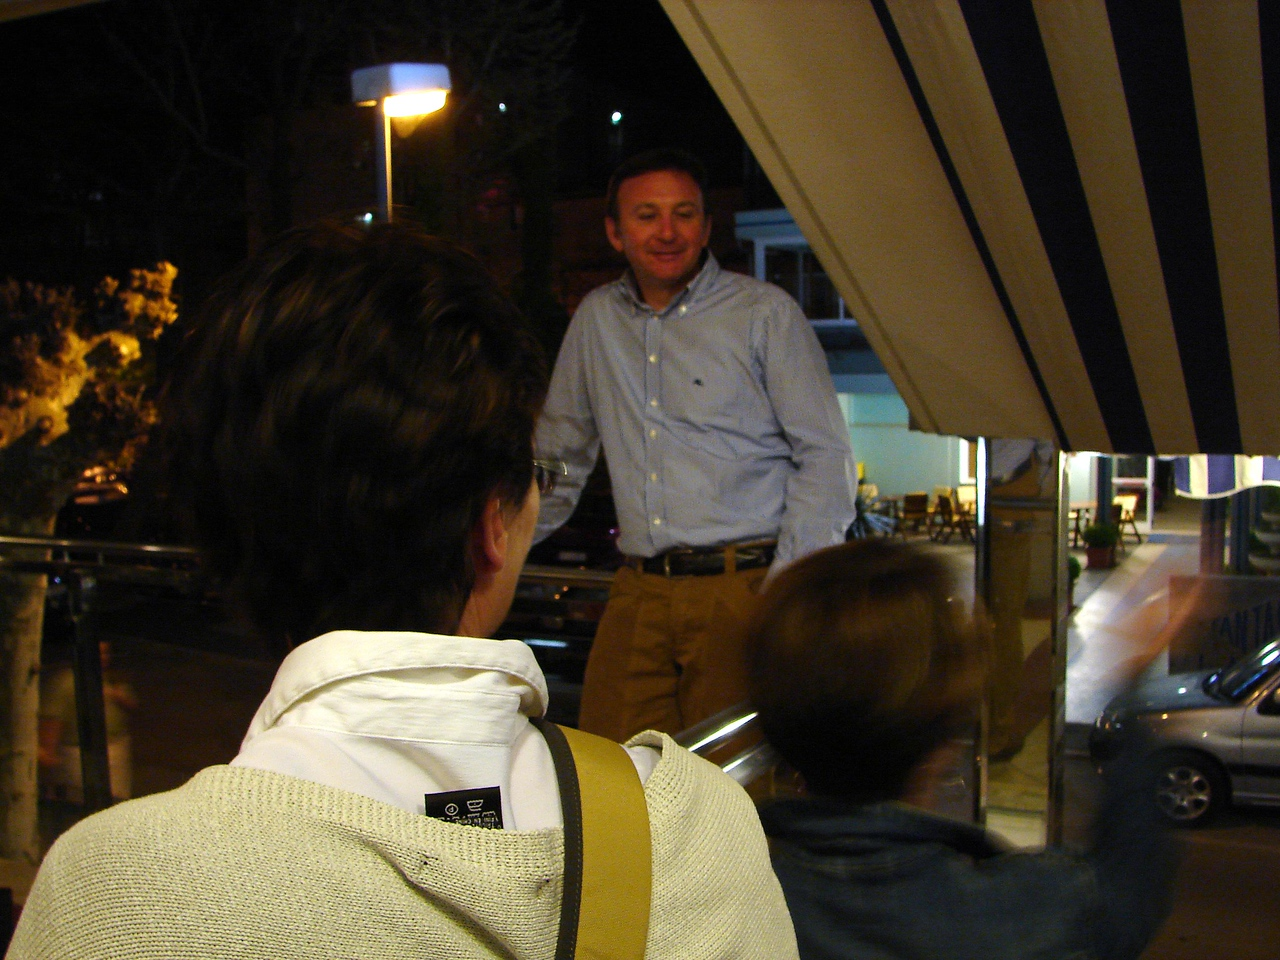 The owner of the hotel chatting up the girls.